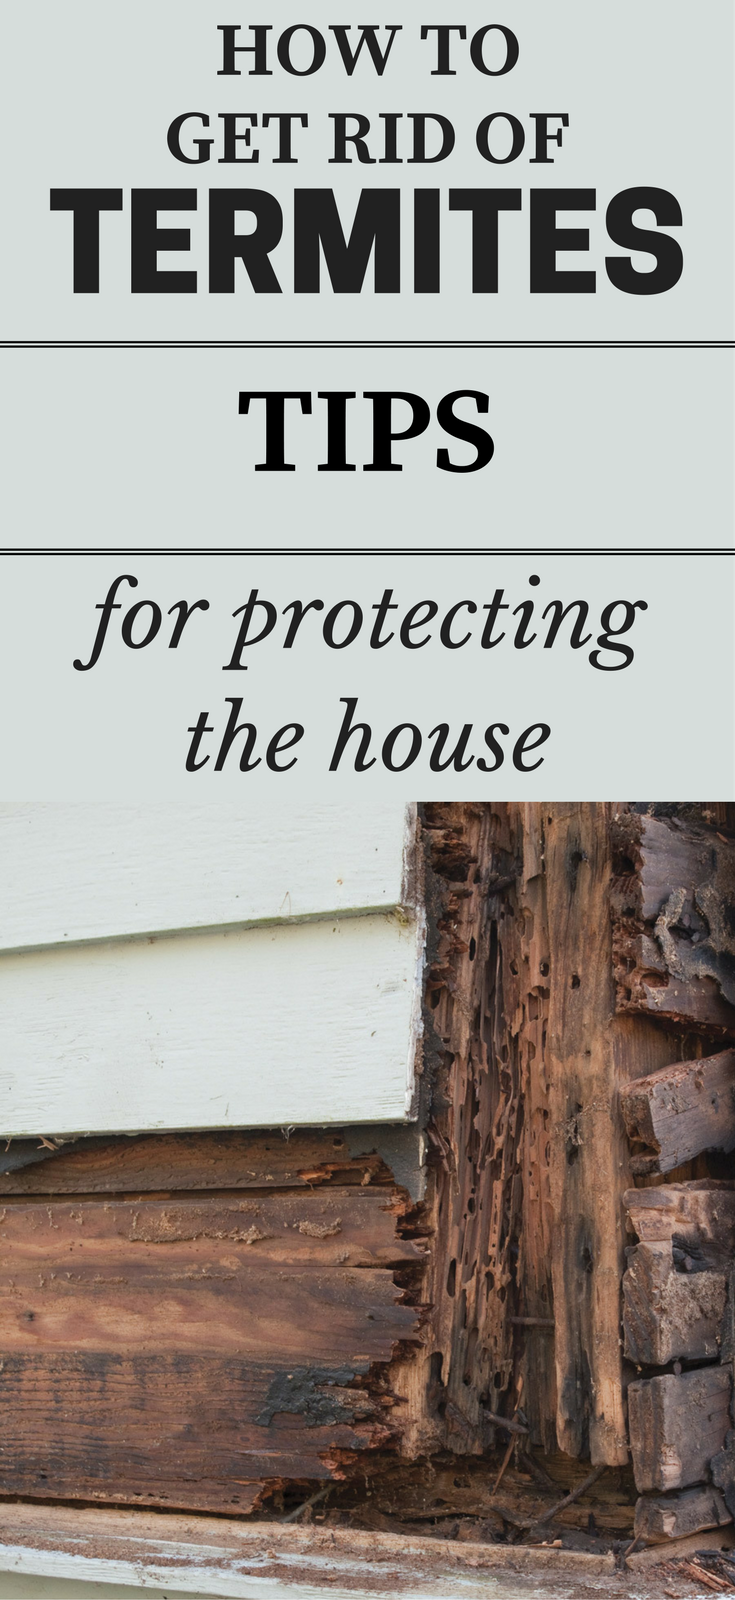 How To Get Rid Of Termites - Tips For Protecting The House